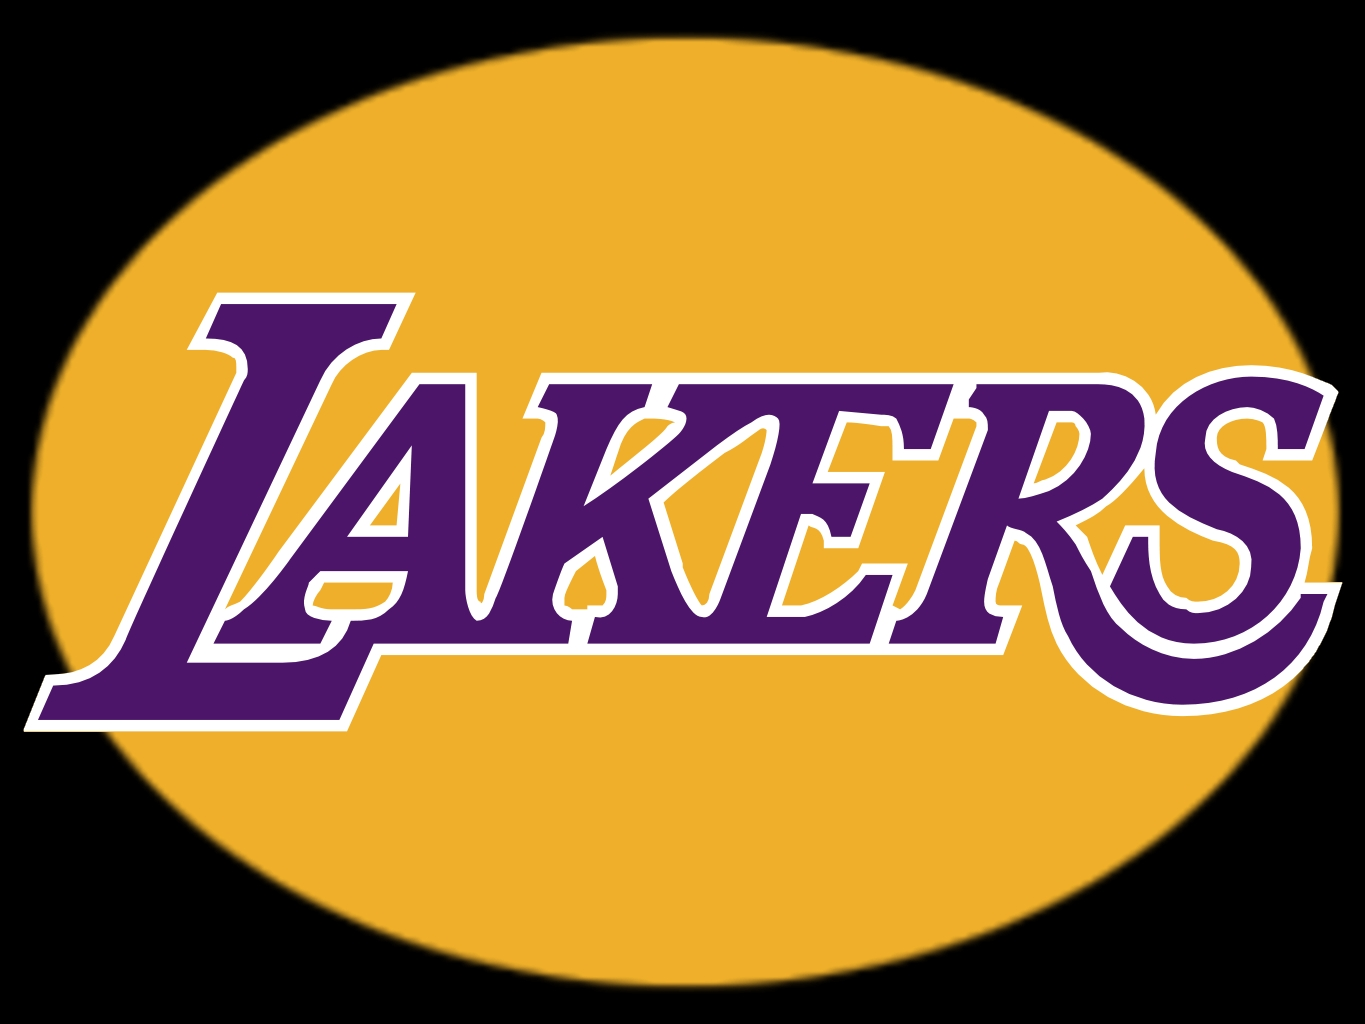 World Sports Hd Wallpapers: Los Angeles Lakers Hd Wallpapers